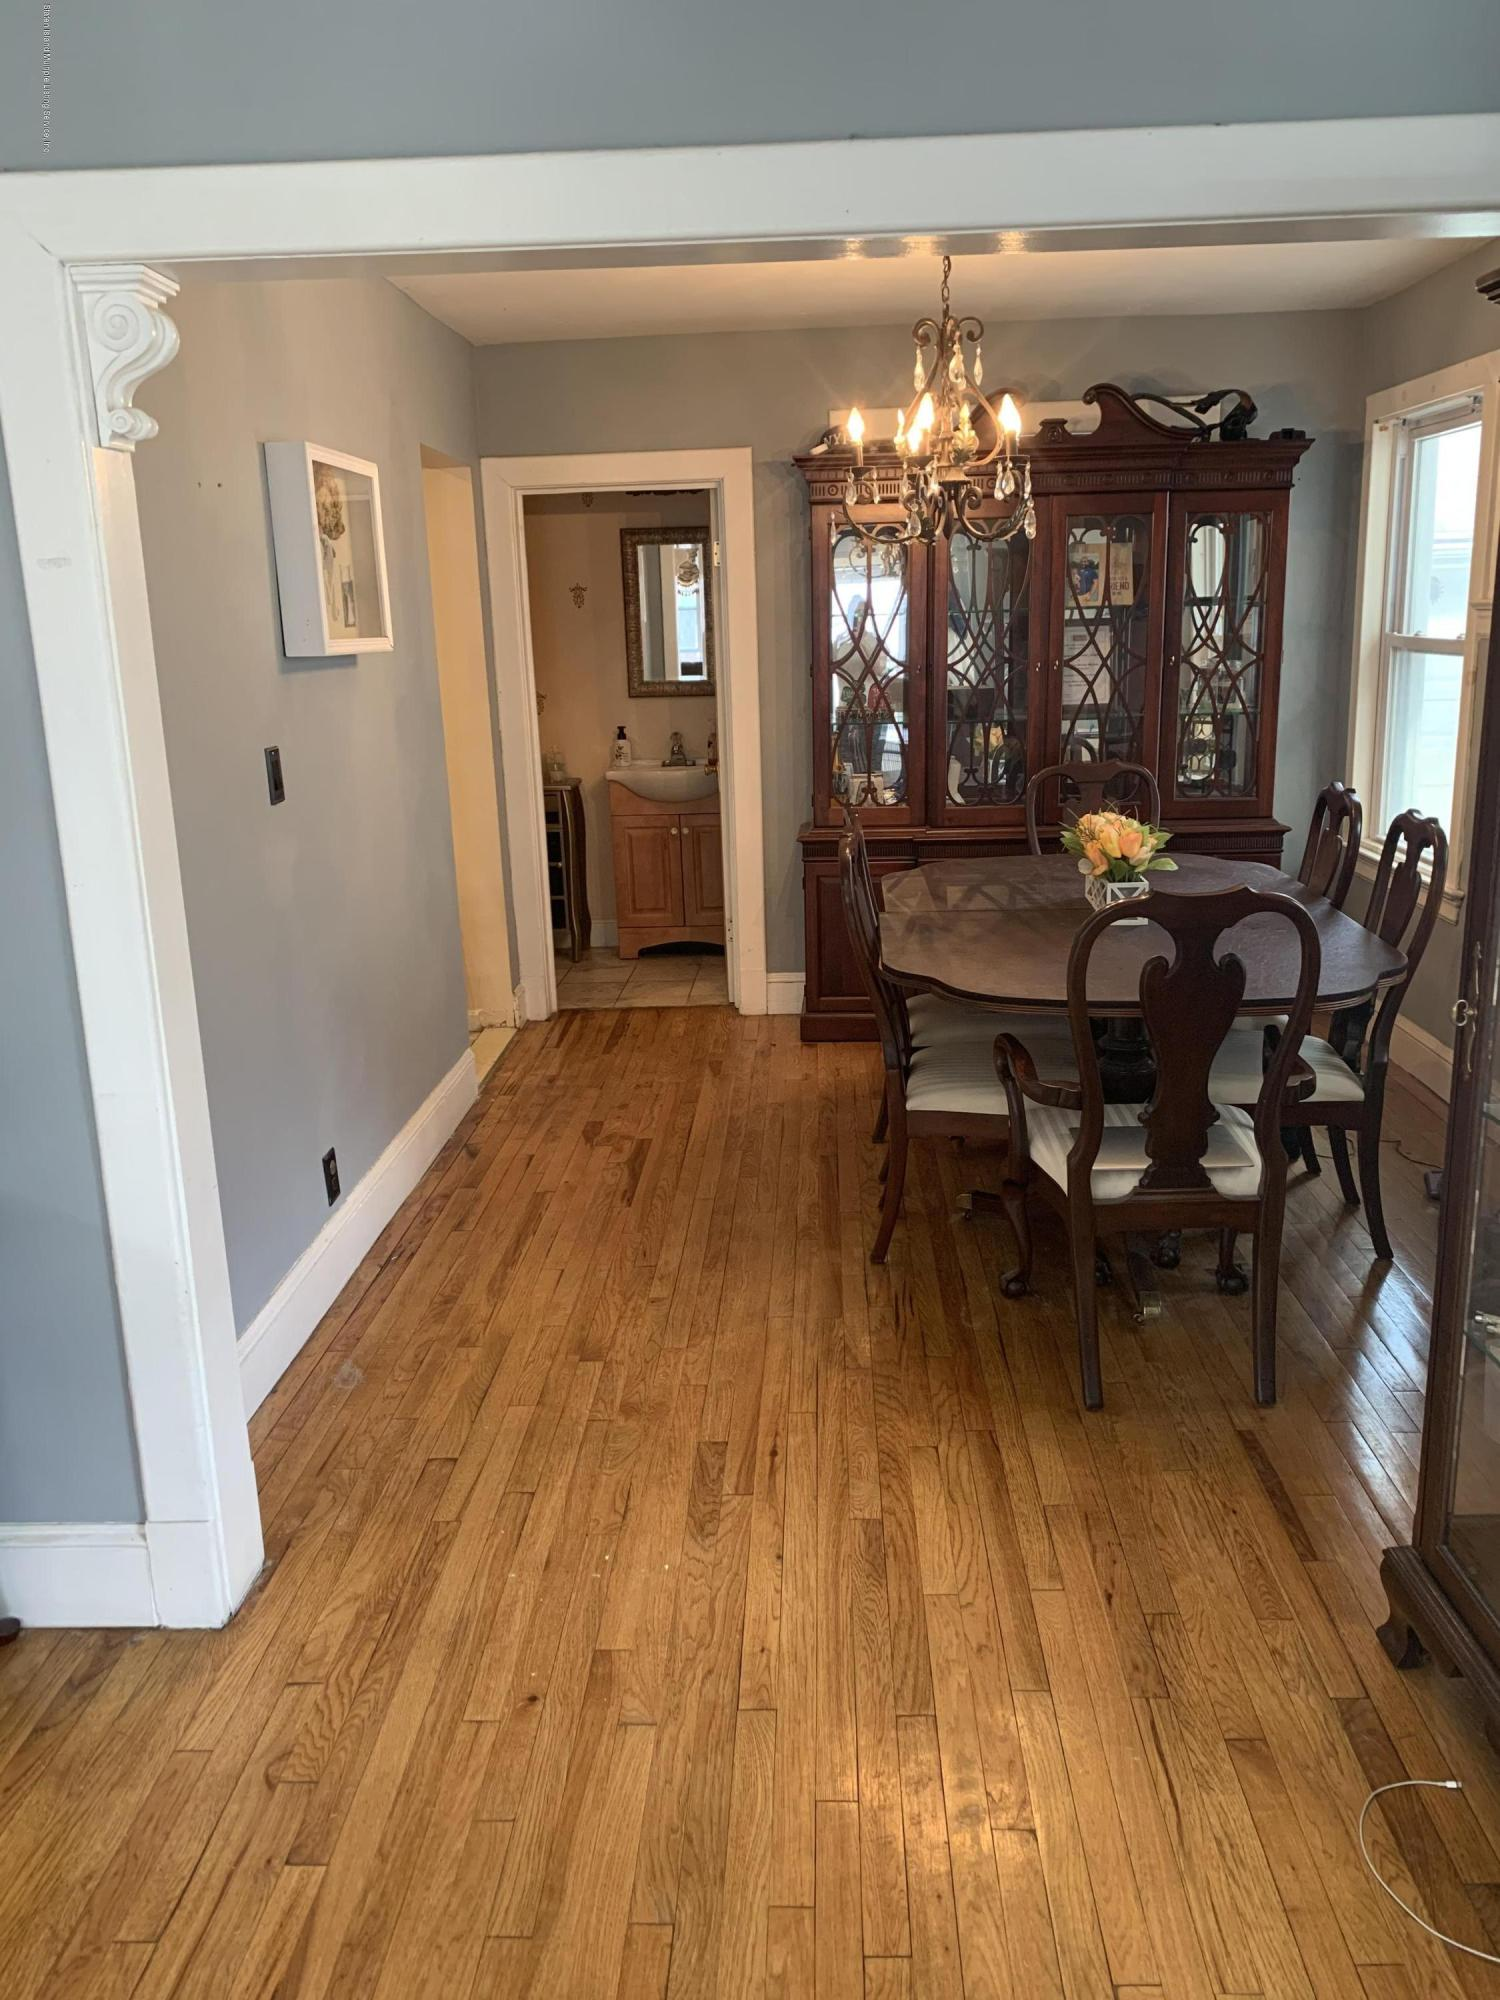 79 Winthrop Place,Staten Island,New York,10314,United States,2 Bedrooms Bedrooms,5 Rooms Rooms,3 BathroomsBathrooms,Residential,Winthrop,1136672